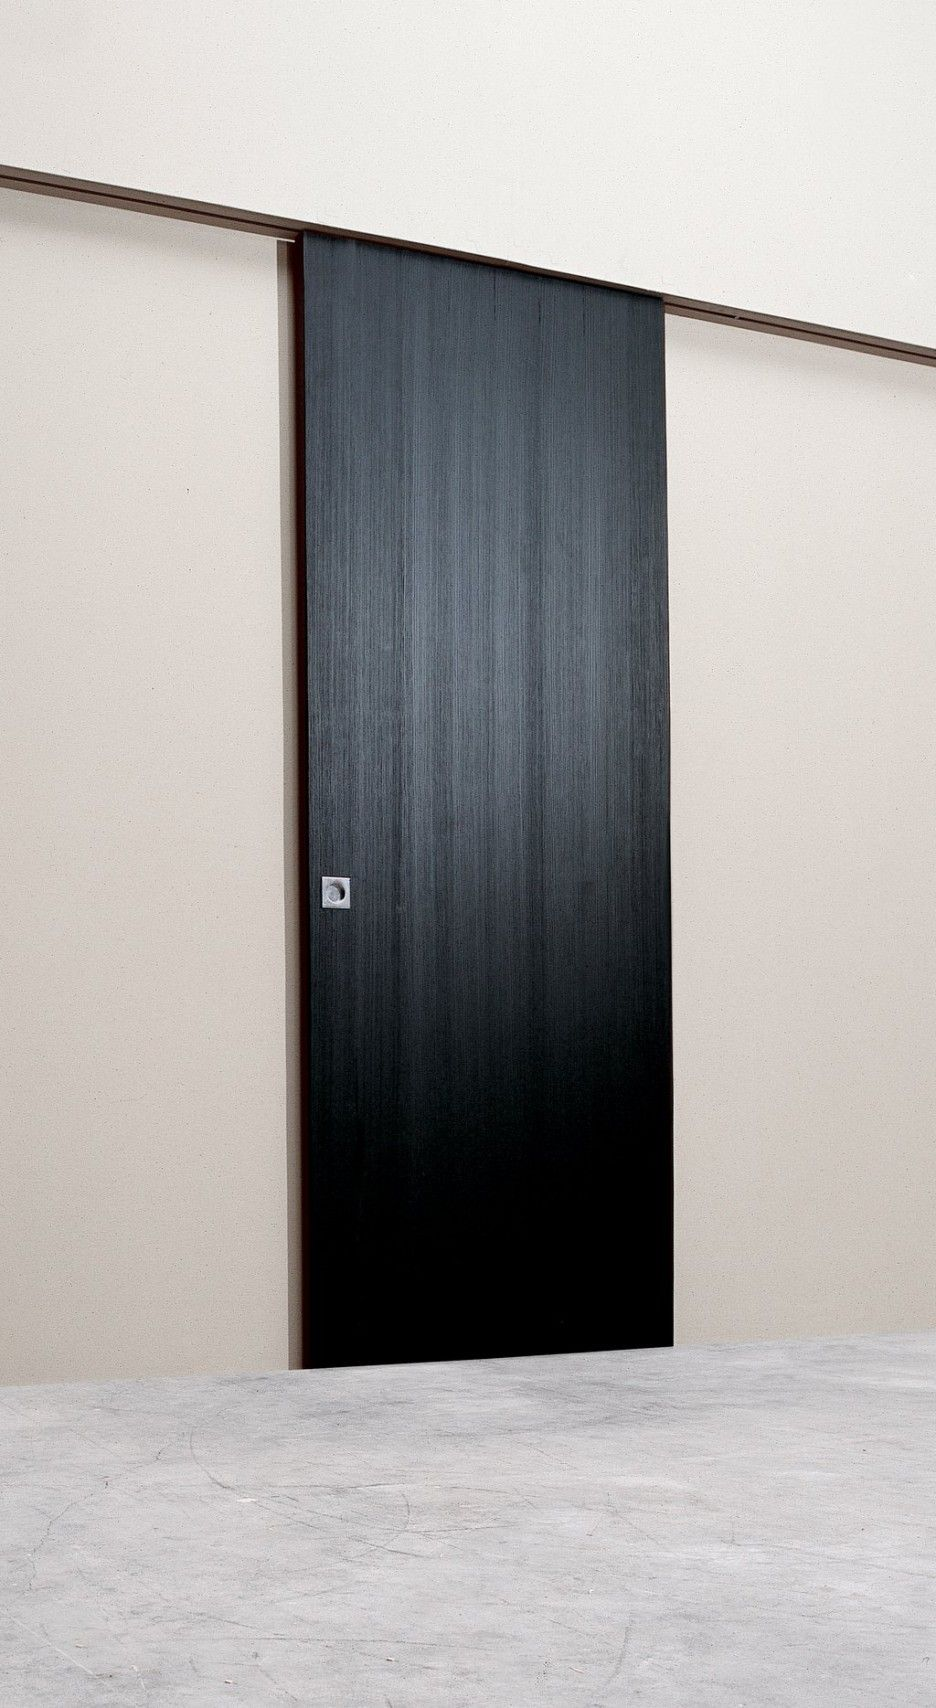 Wall Mounted Sliding Doors Give The Impression Of A Beautiful Minimalist Mount Door Hardware Design With Pure Black Wooden Painted Brown Iron